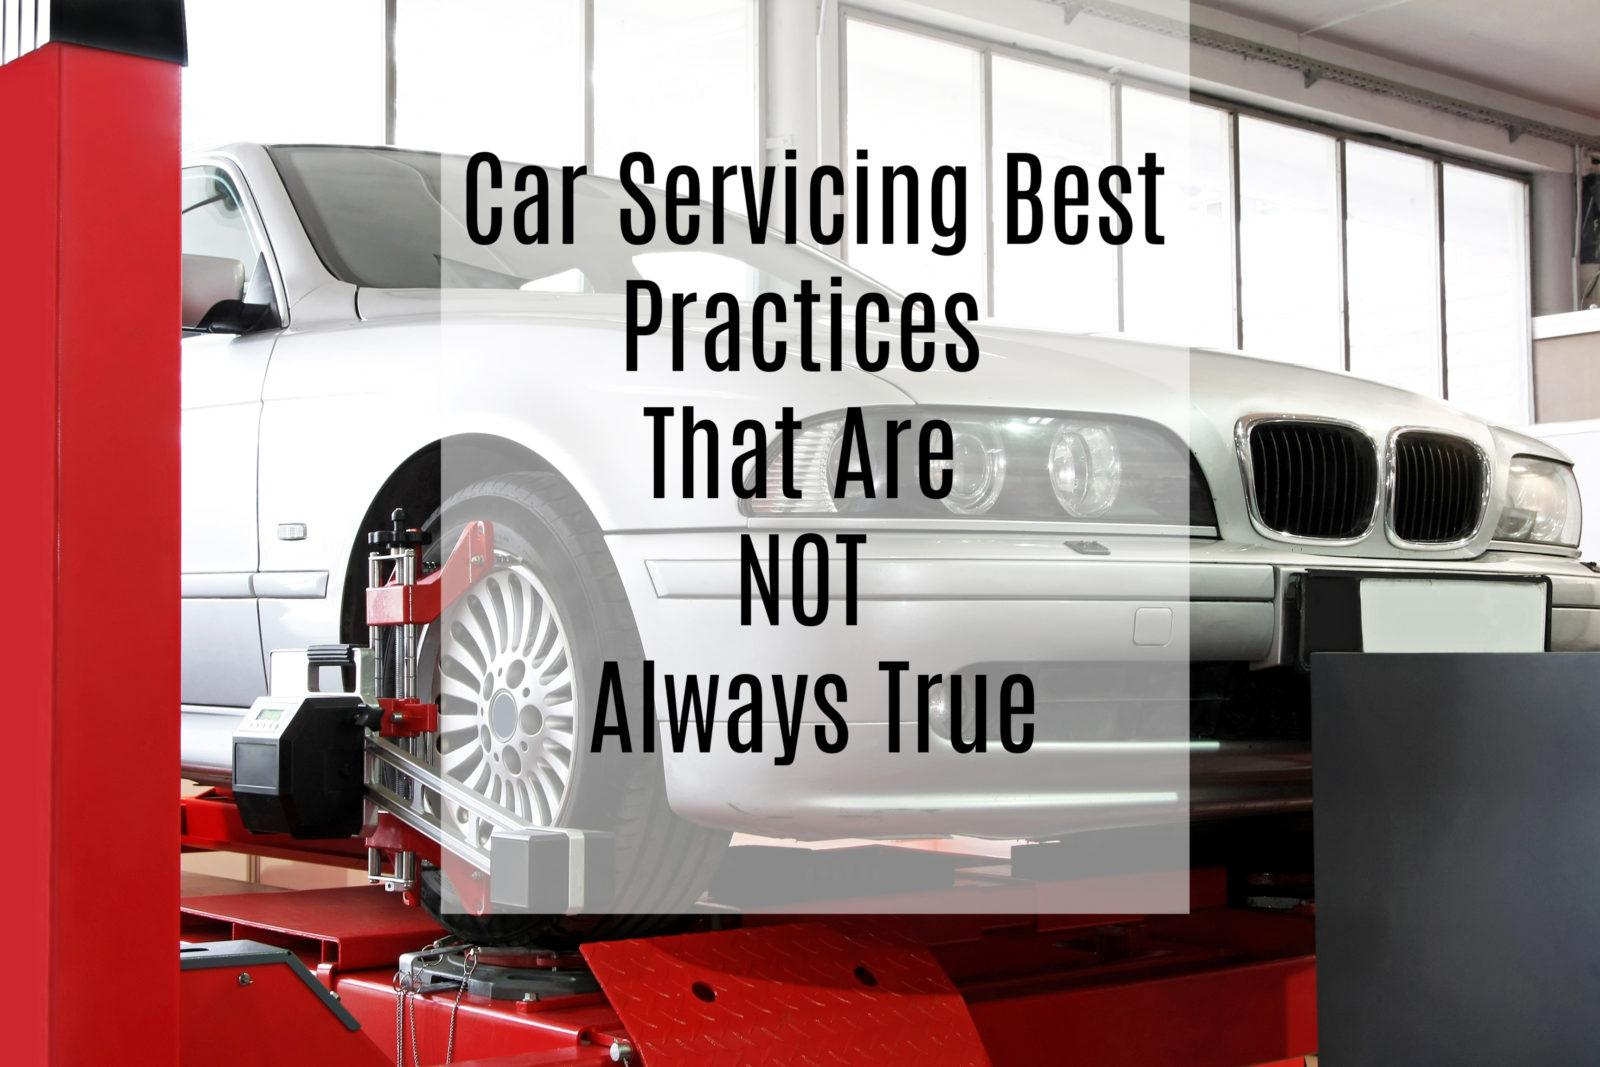 car servicing best practices that are not always true